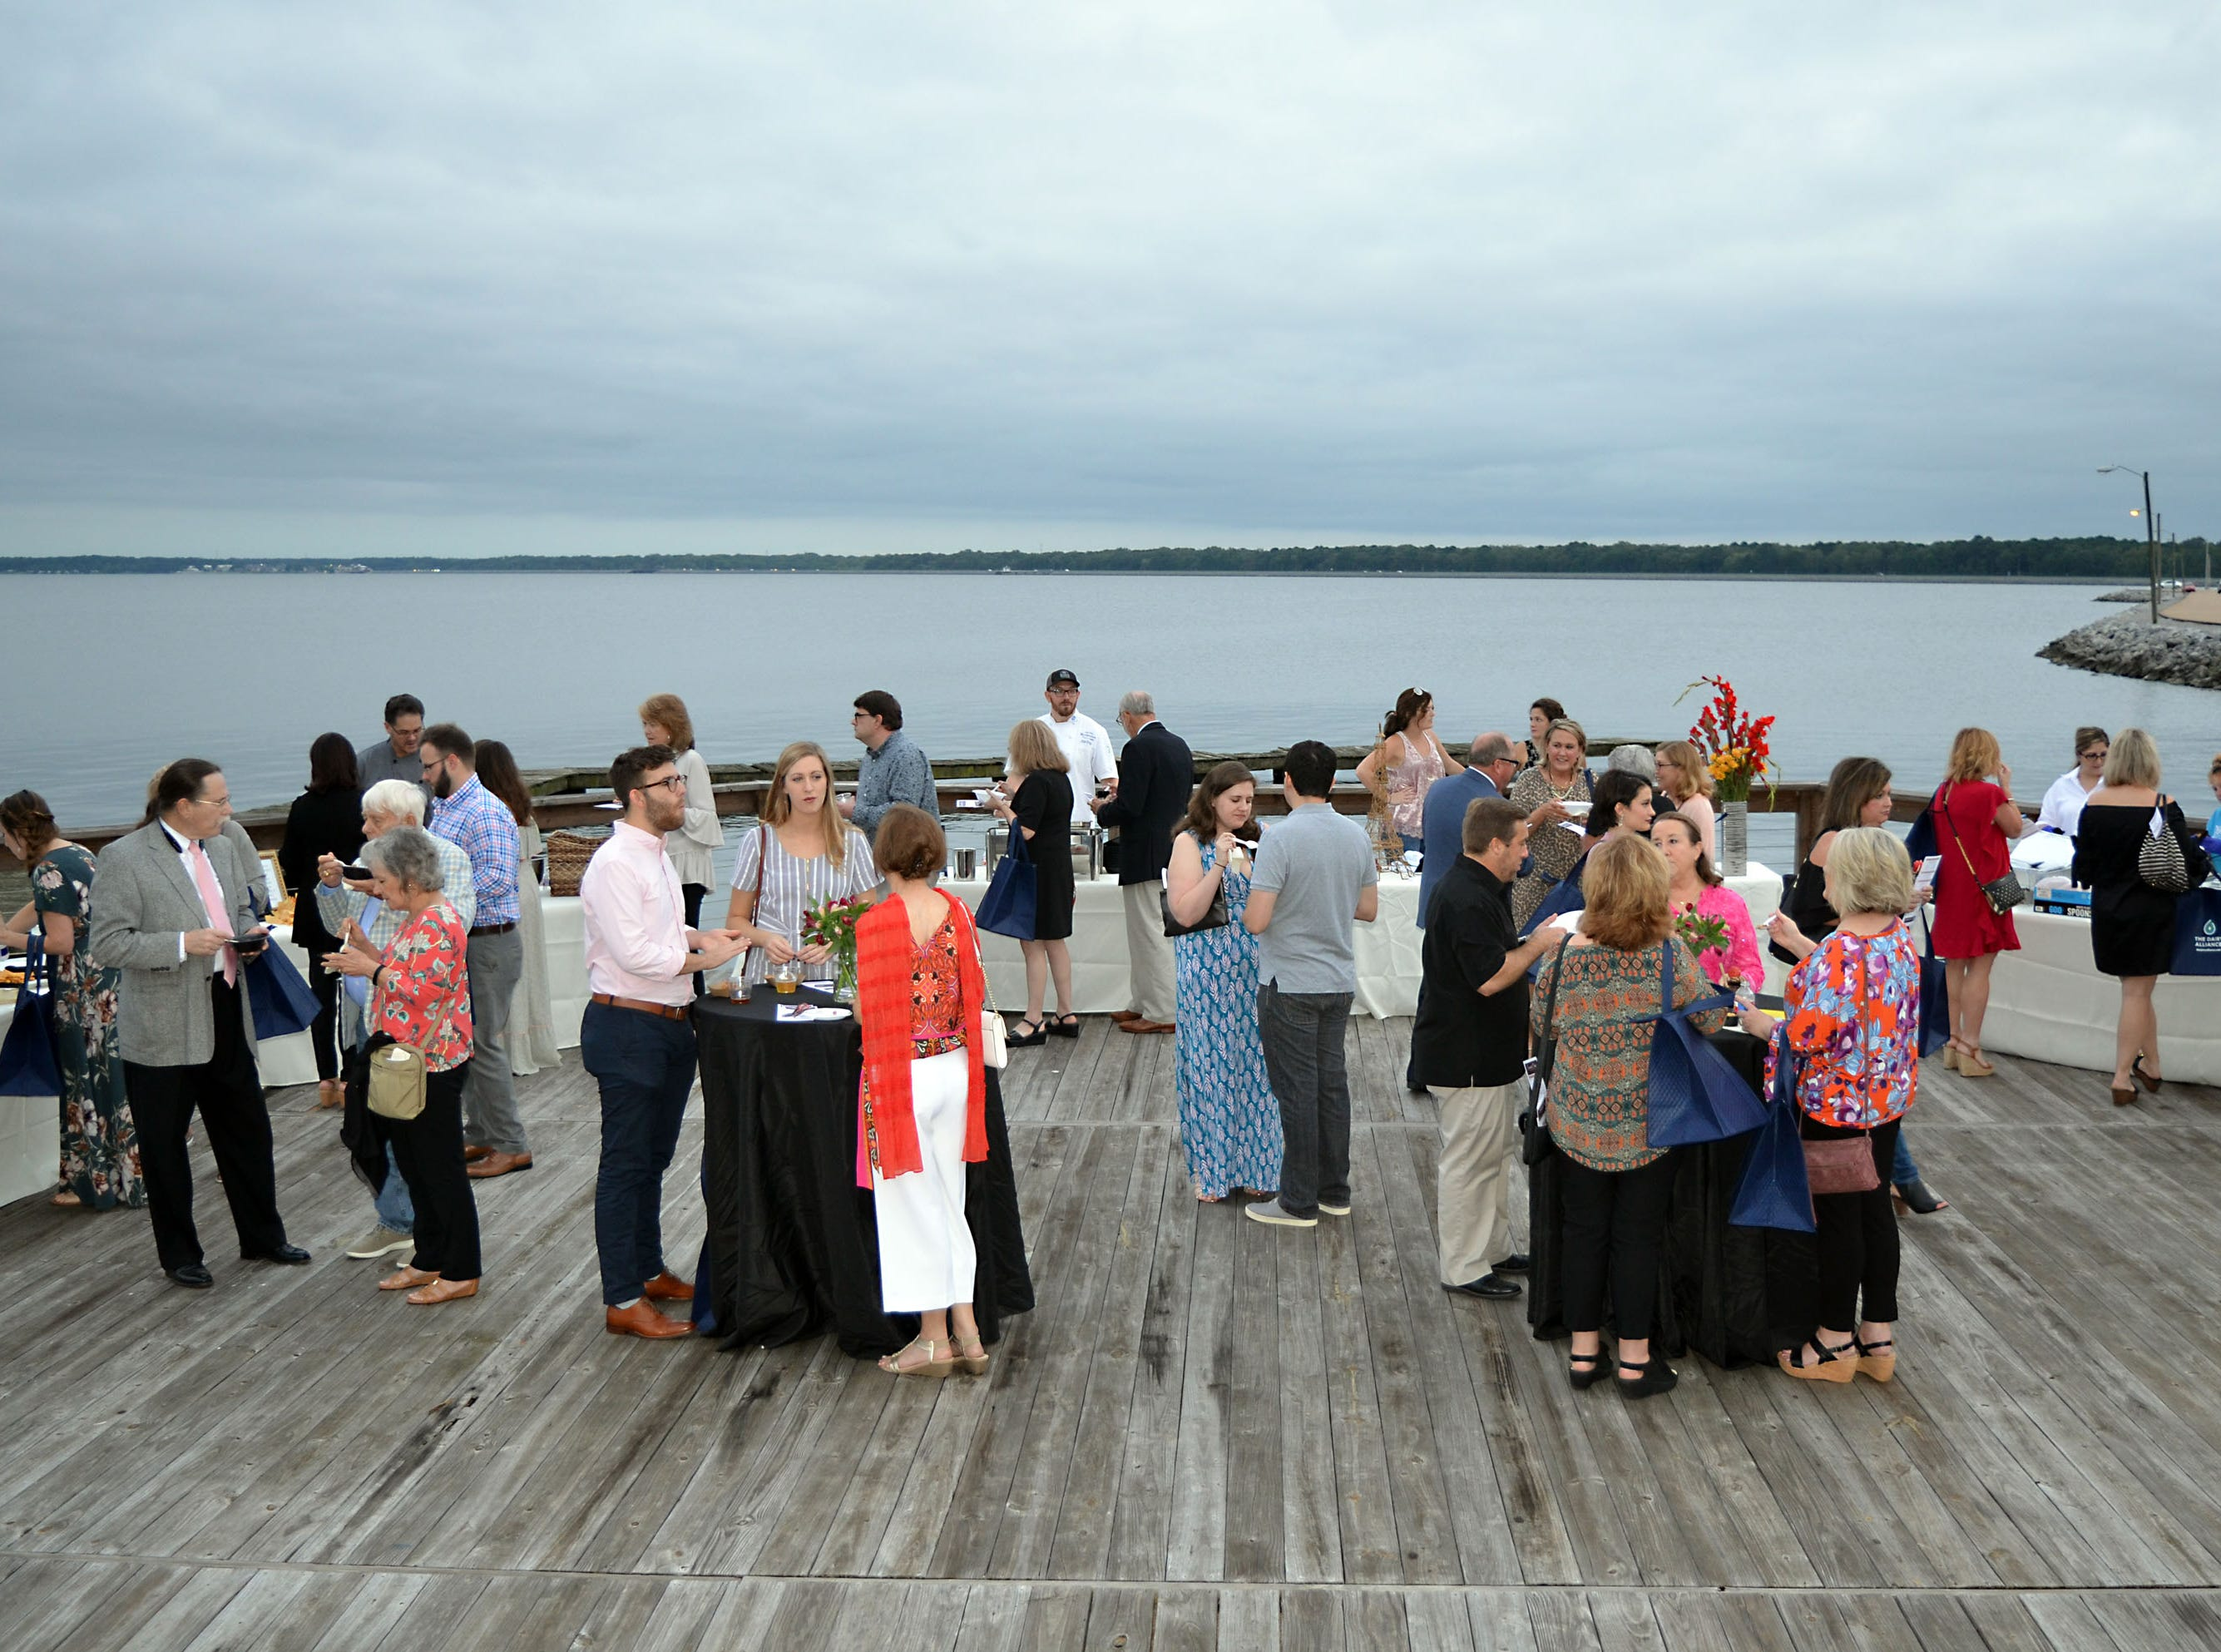 Supporters turned out for the sold out Sweetest Chefs event held Monday at The Lake House in Ridgeland. The event was held to raise funds for Extra Table to feed the hungry in our local area.